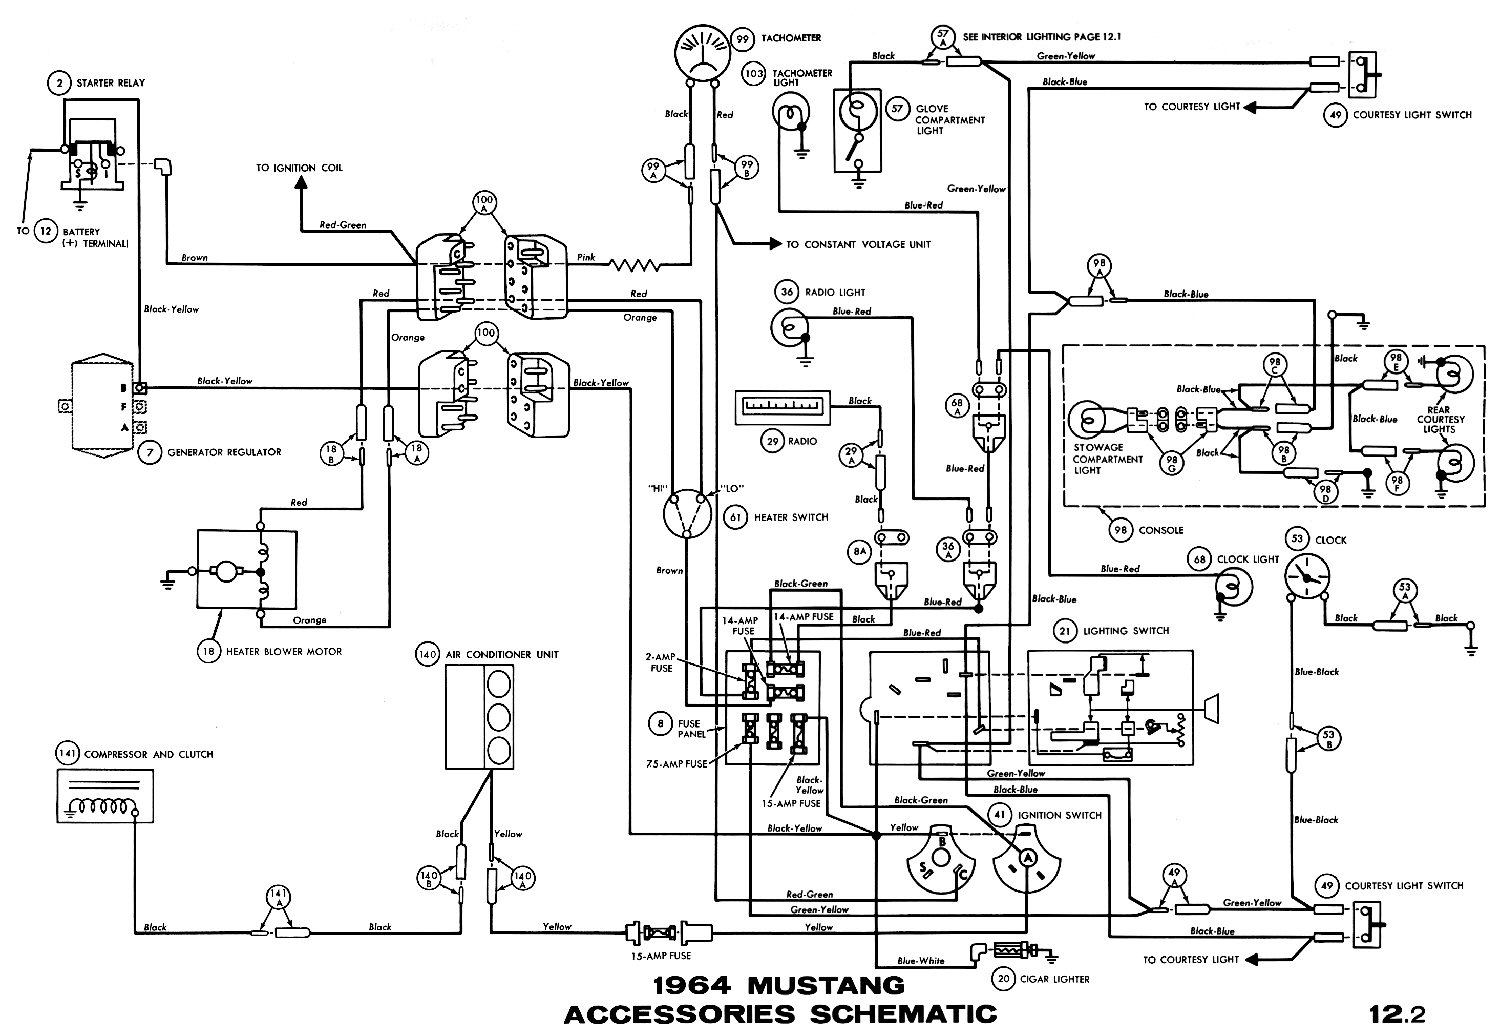 1964m 1968 mustang blower motor wiring 100 images 1968 ford mustang 1968 ford mustang wiring diagram at soozxer.org